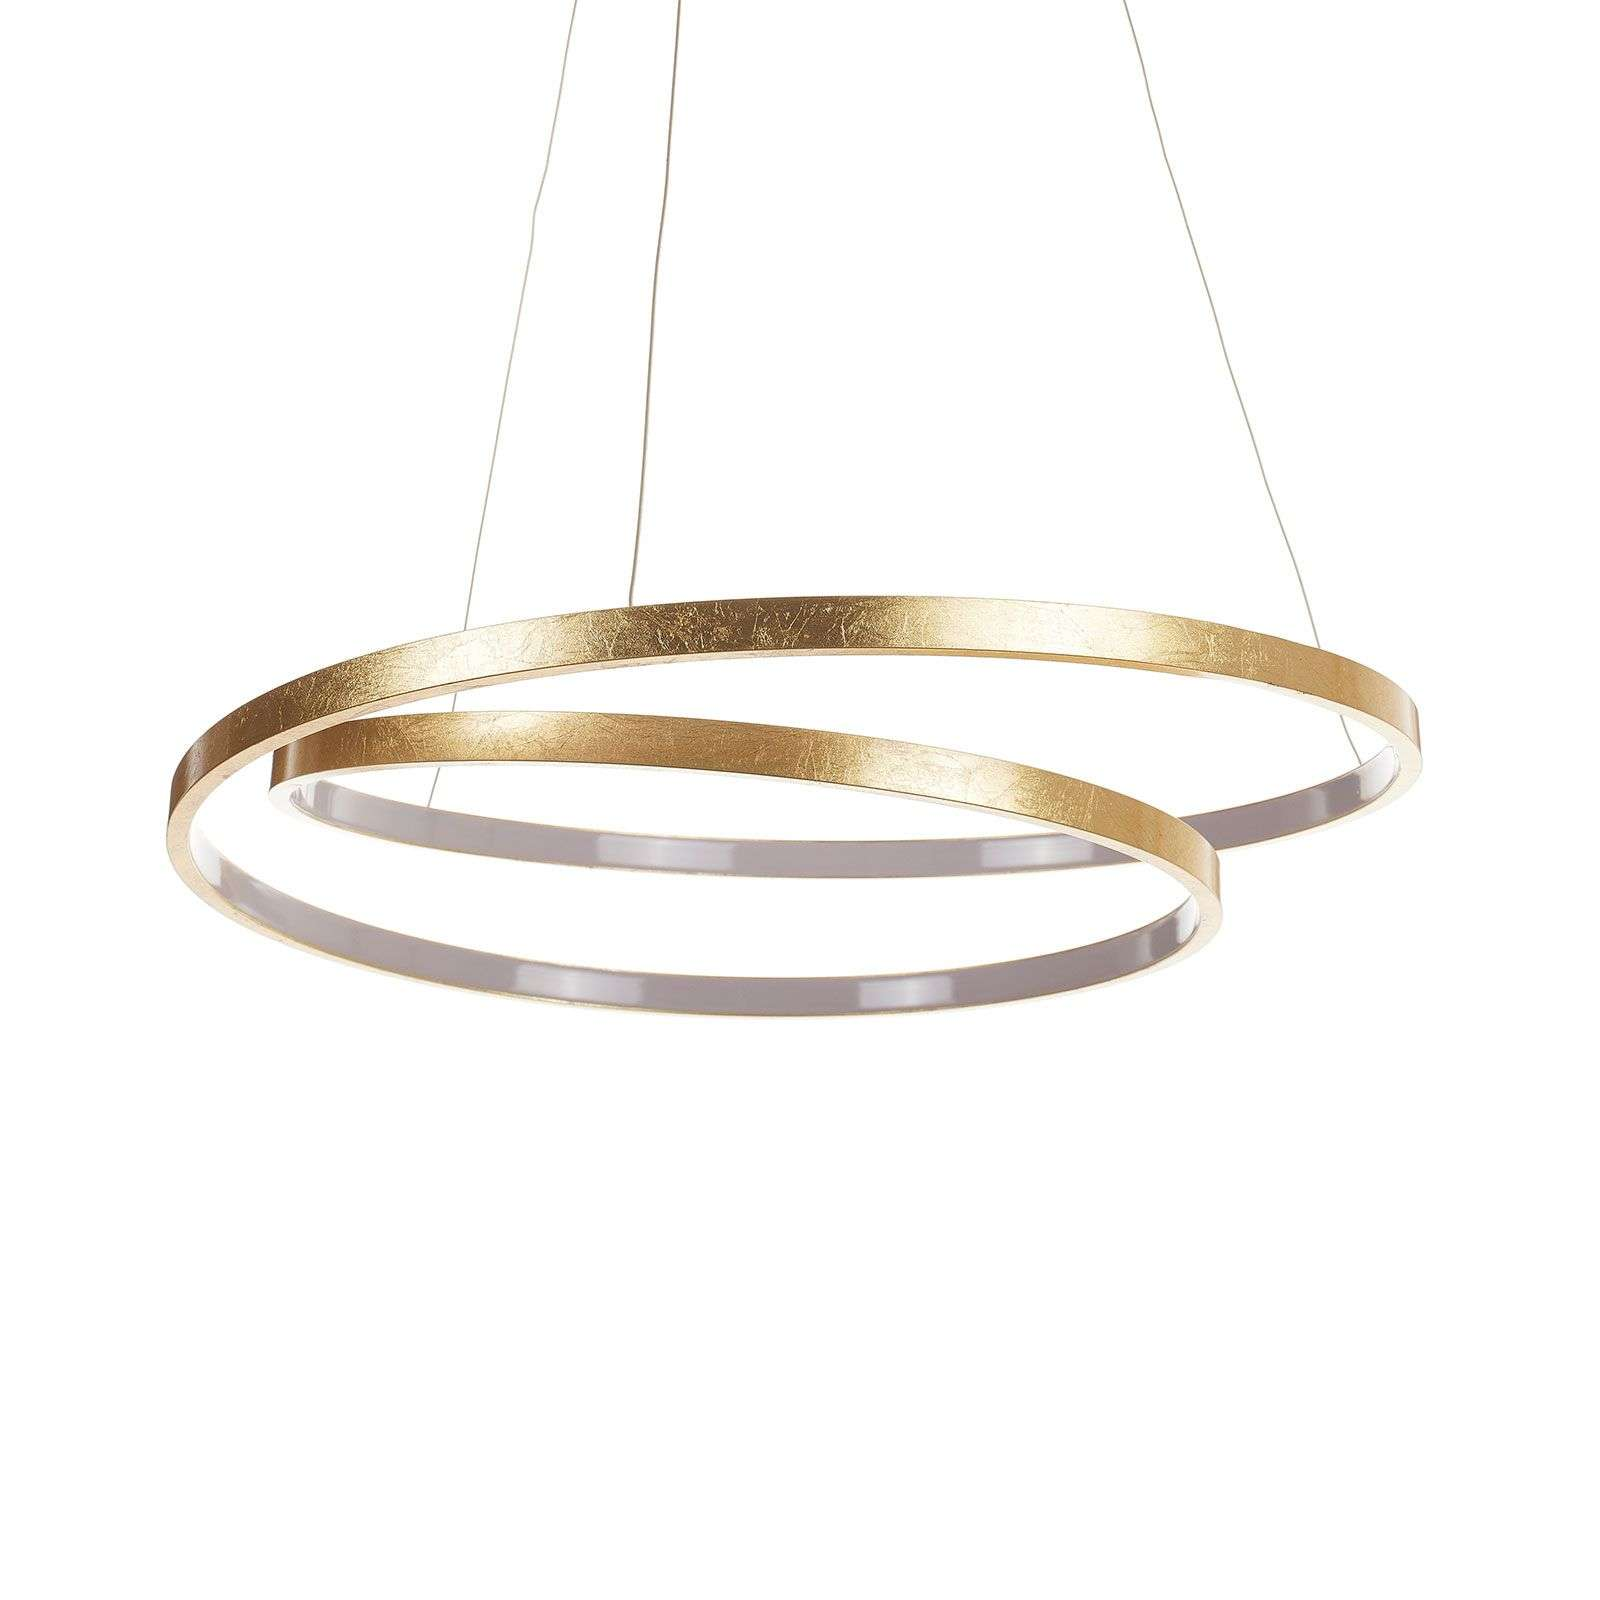 Dimmable via interrupteur - suspension LED Roman